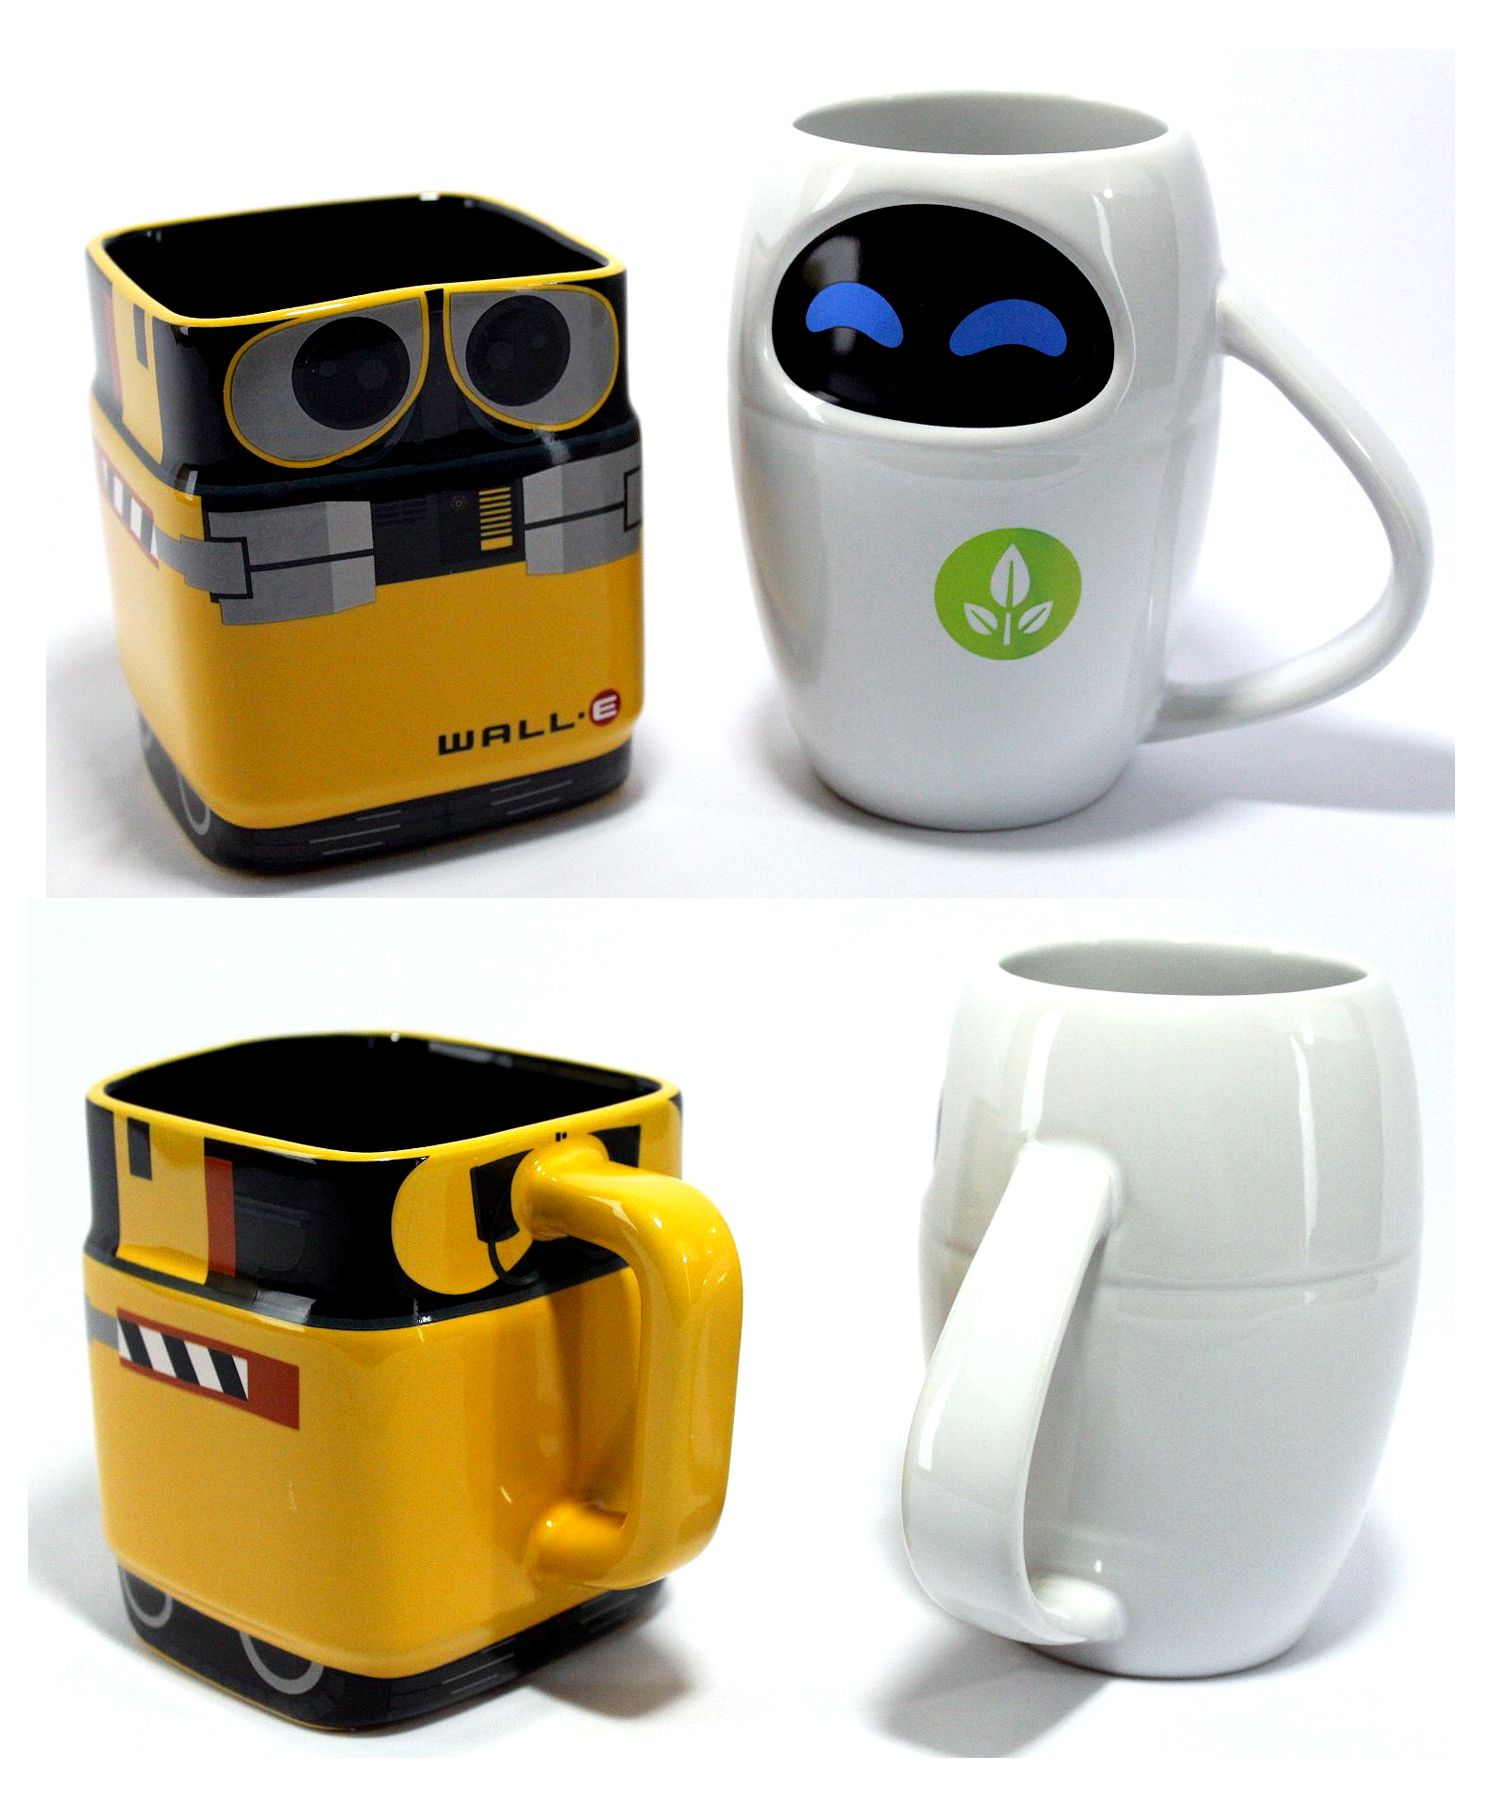 Disney pixar wall e and eve mug gift set disney fun disney pixar and check - Walle and eve mugs ...